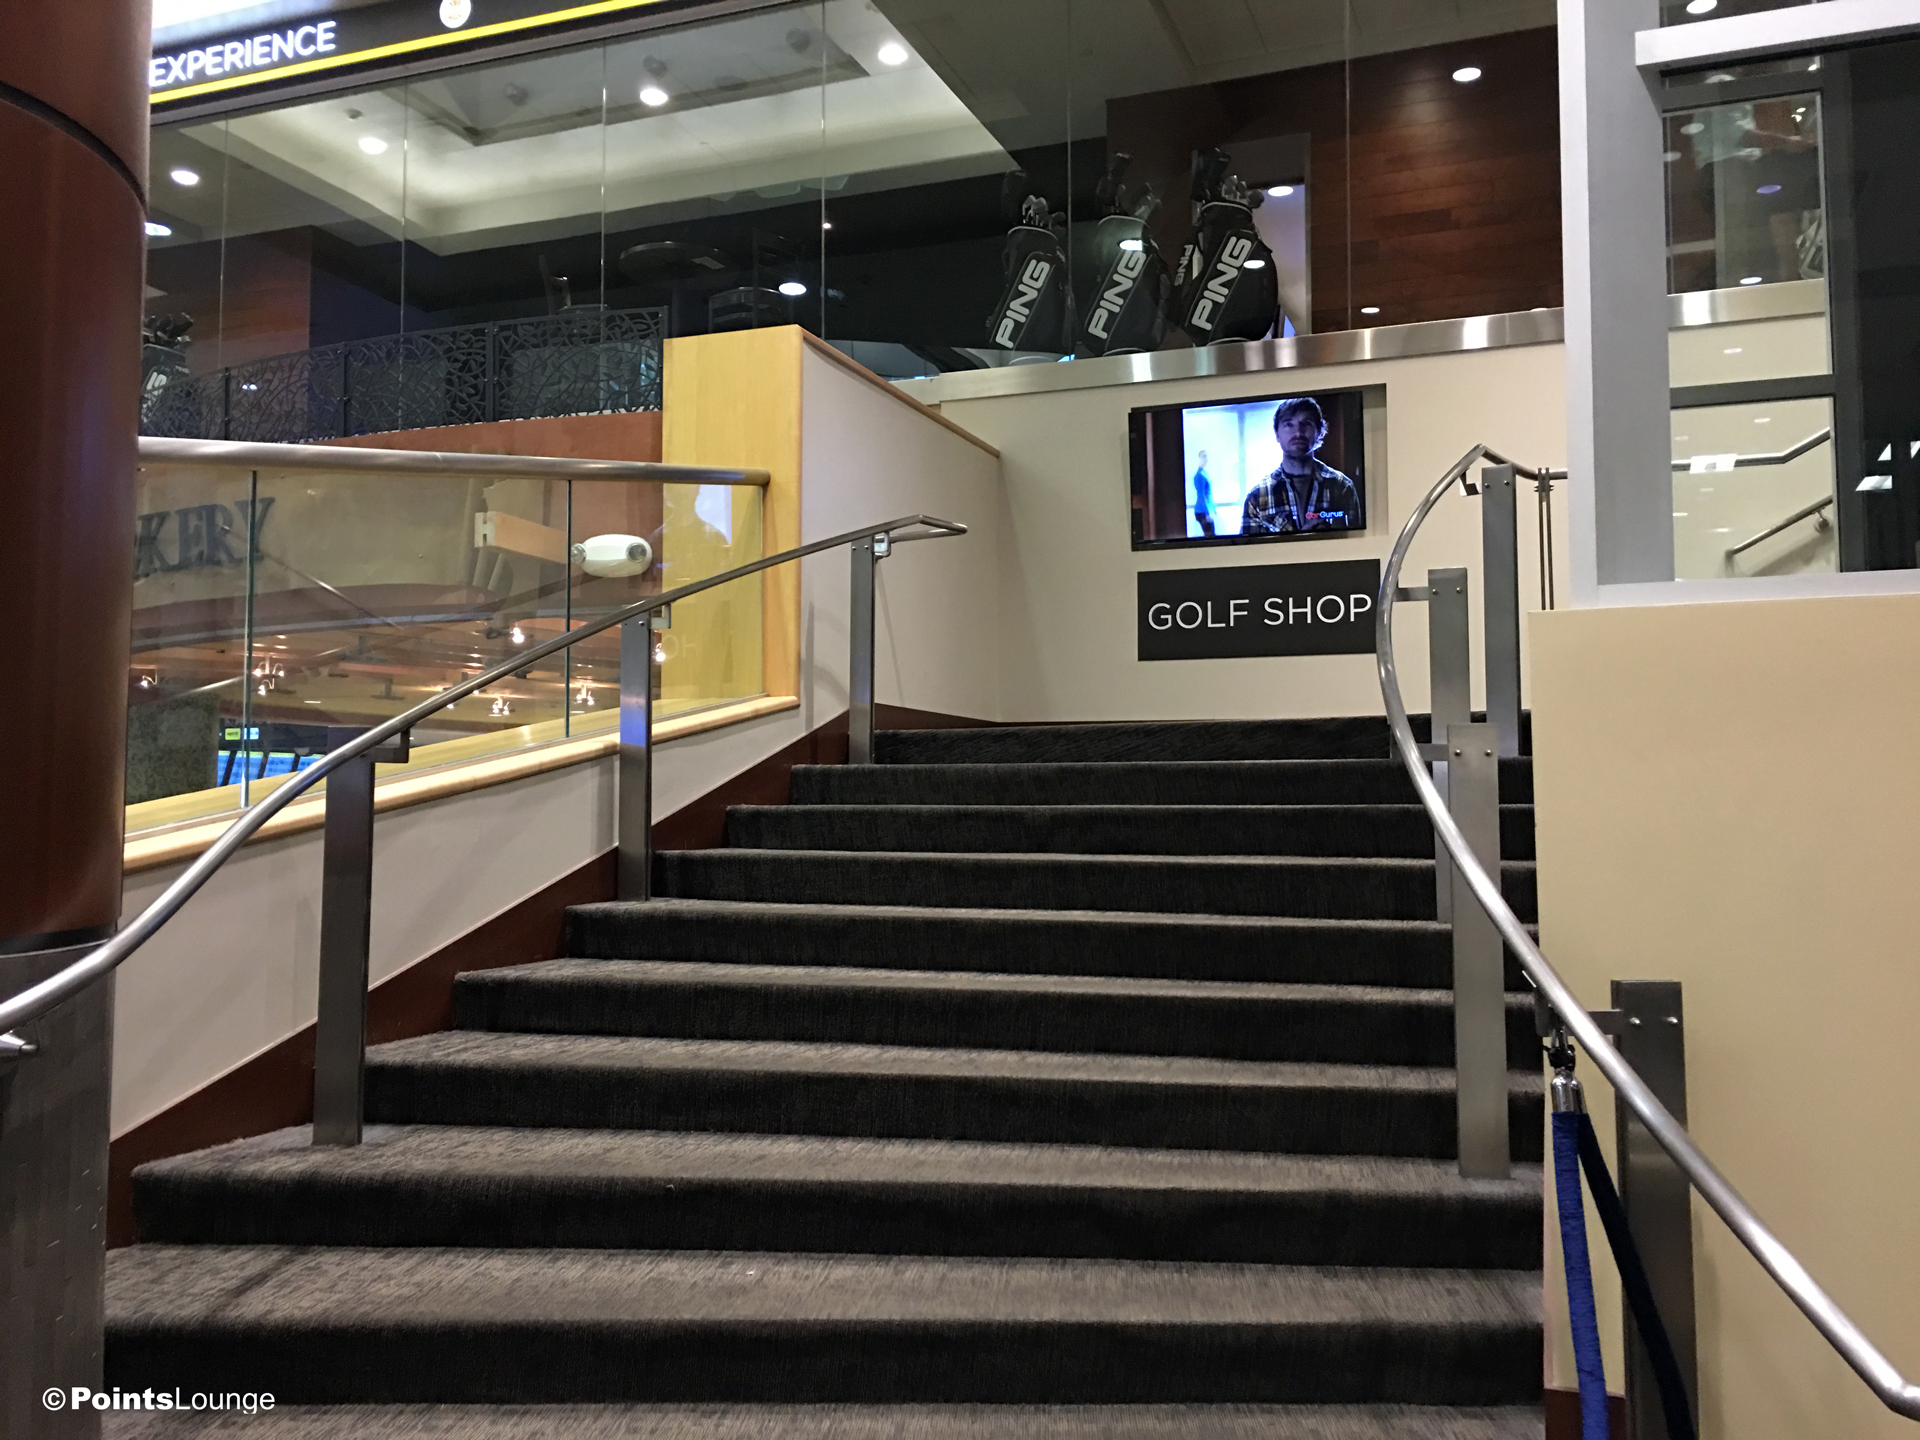 A view of the entrance stairs outside the PGA MSP golf-themed airport lounge, as seen from the main course atrium at Minneapolis-St. Paul International Airport. One of the ways the lounge can be access is with Priority Pass membership. (Click for a larger image.)